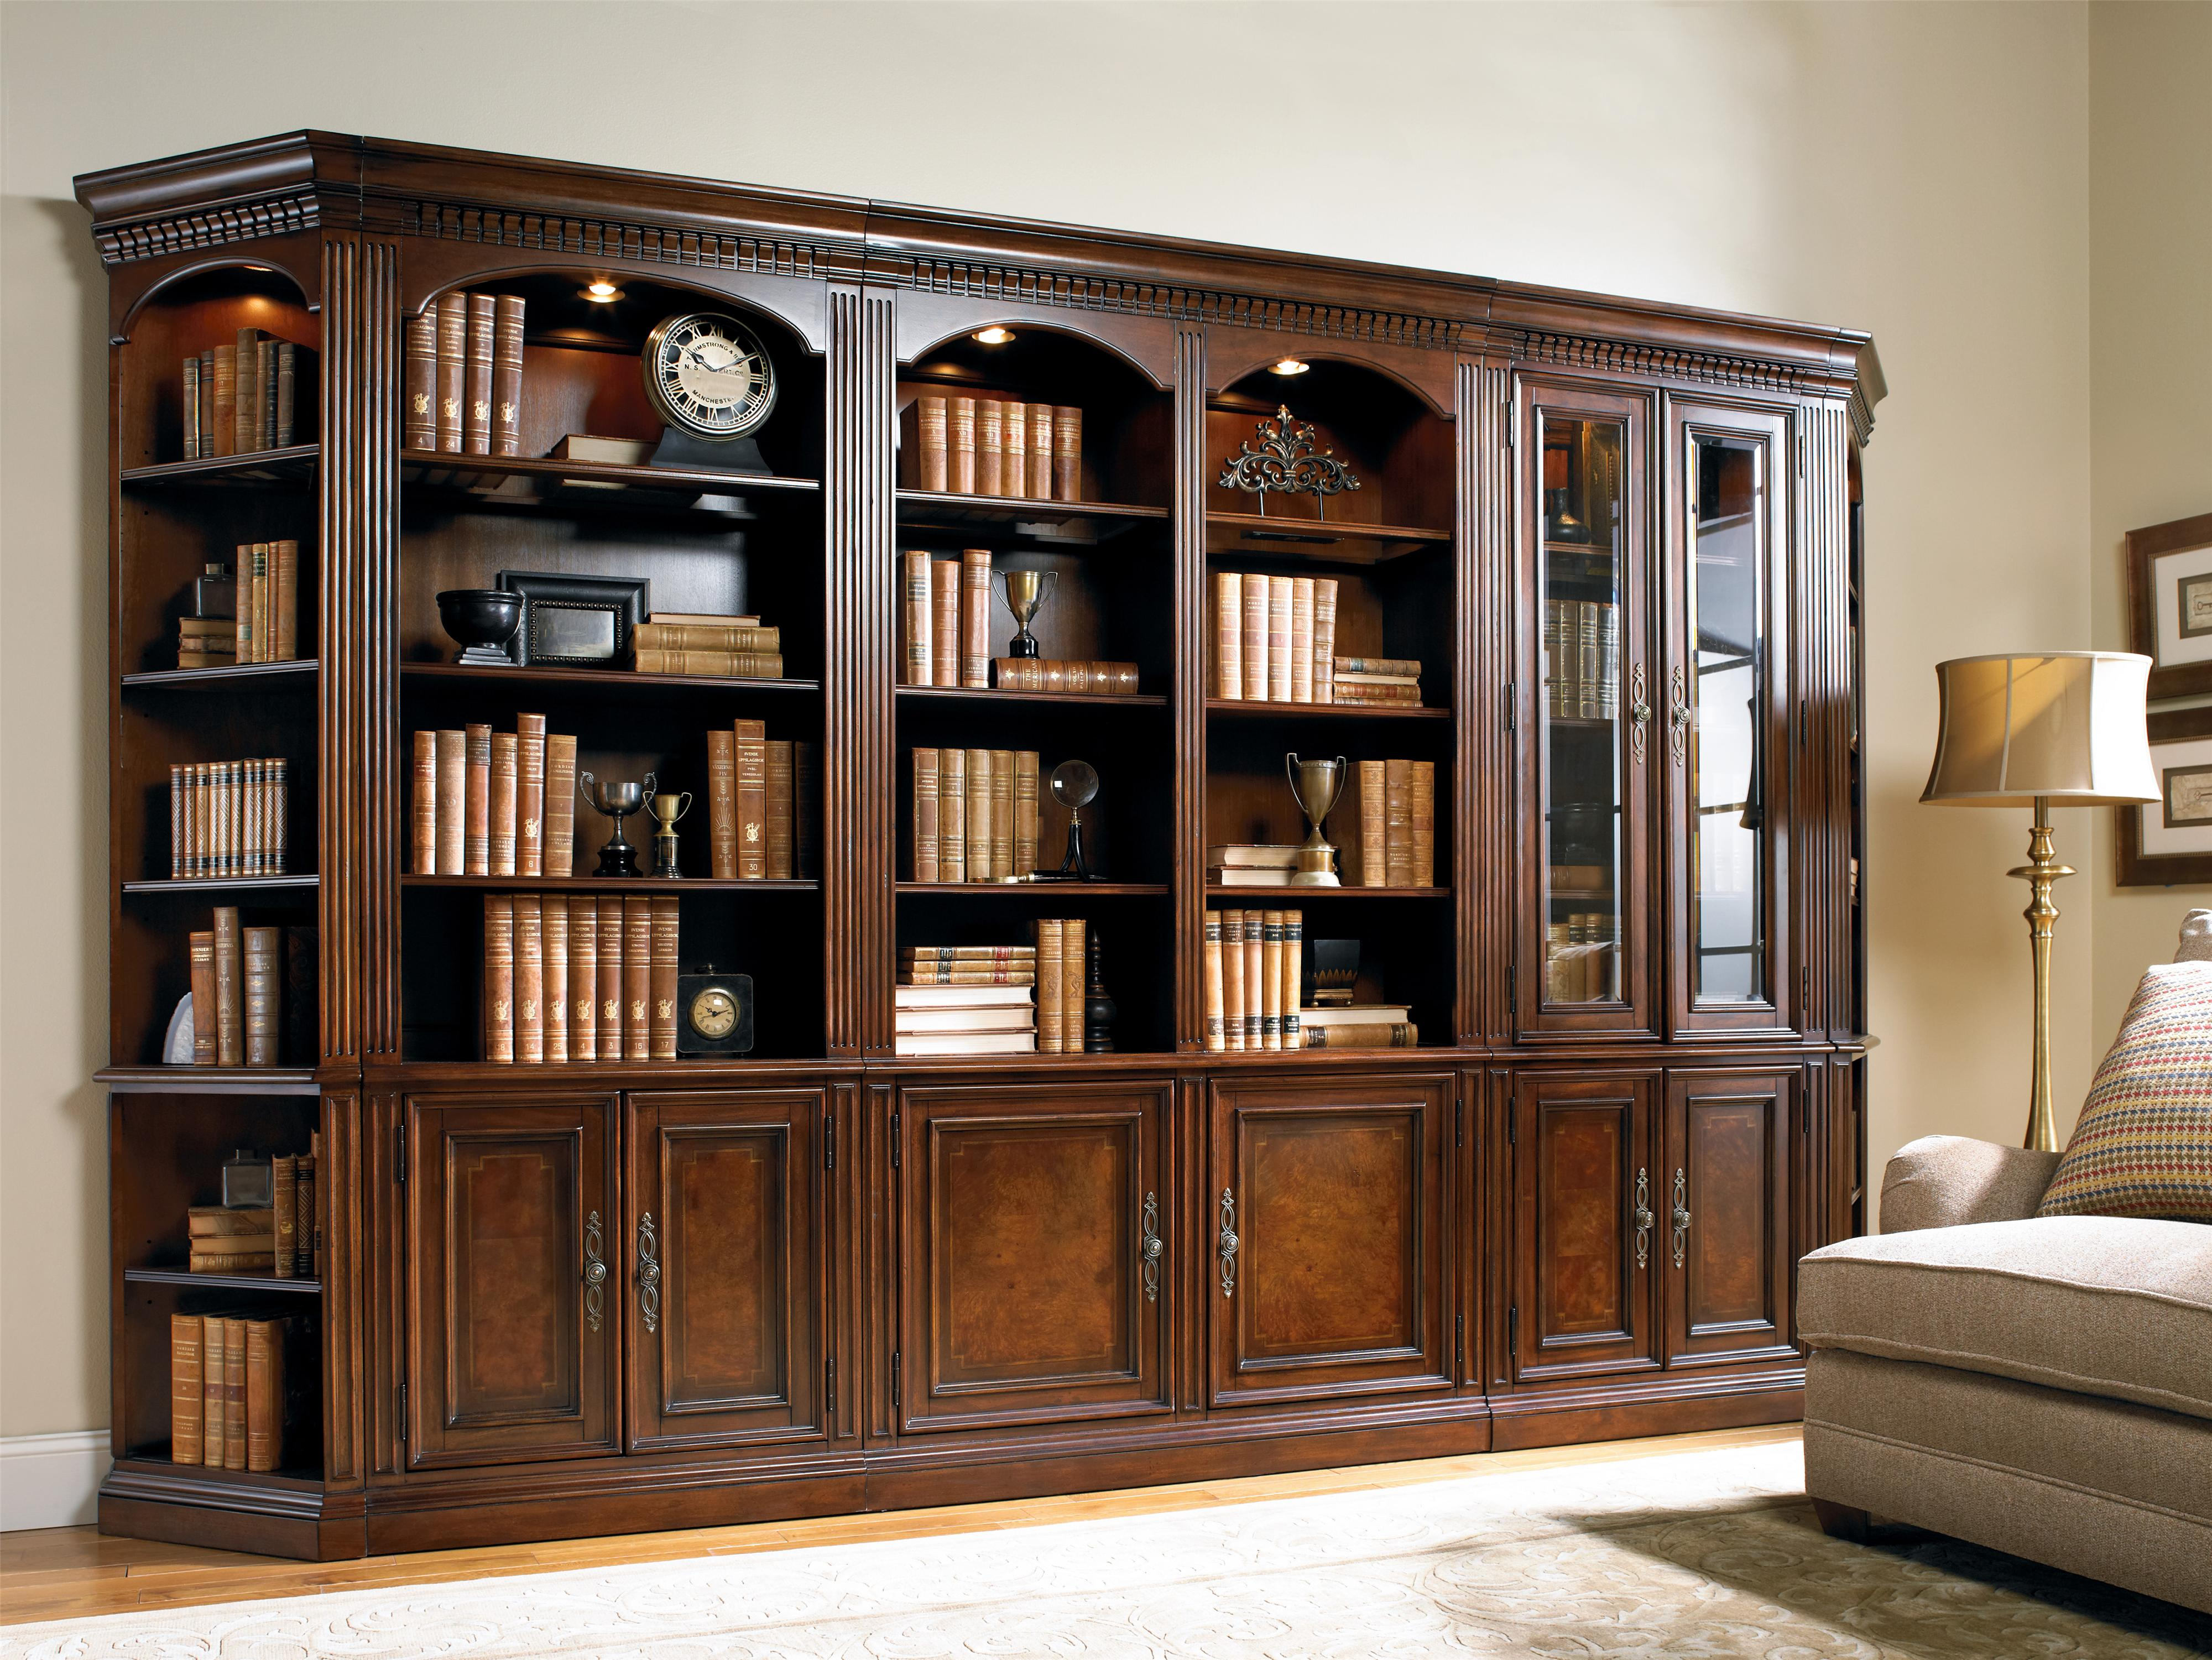 European Renaissance II 374 by Hooker Furniture